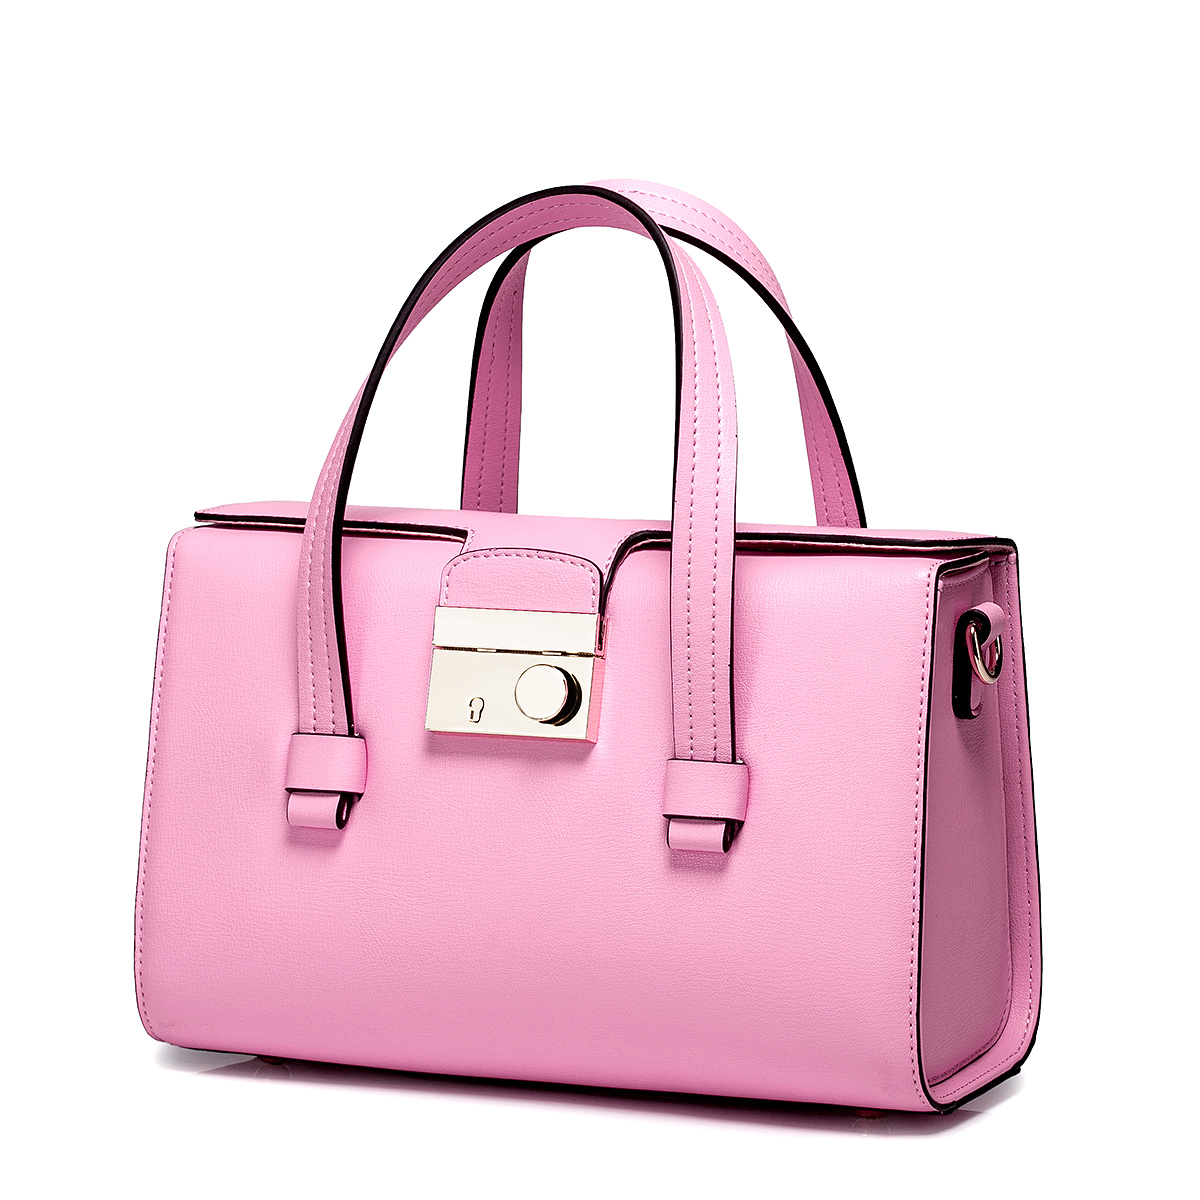 Nucelle Colour Spell Series Delicate And Practical Bag Pink